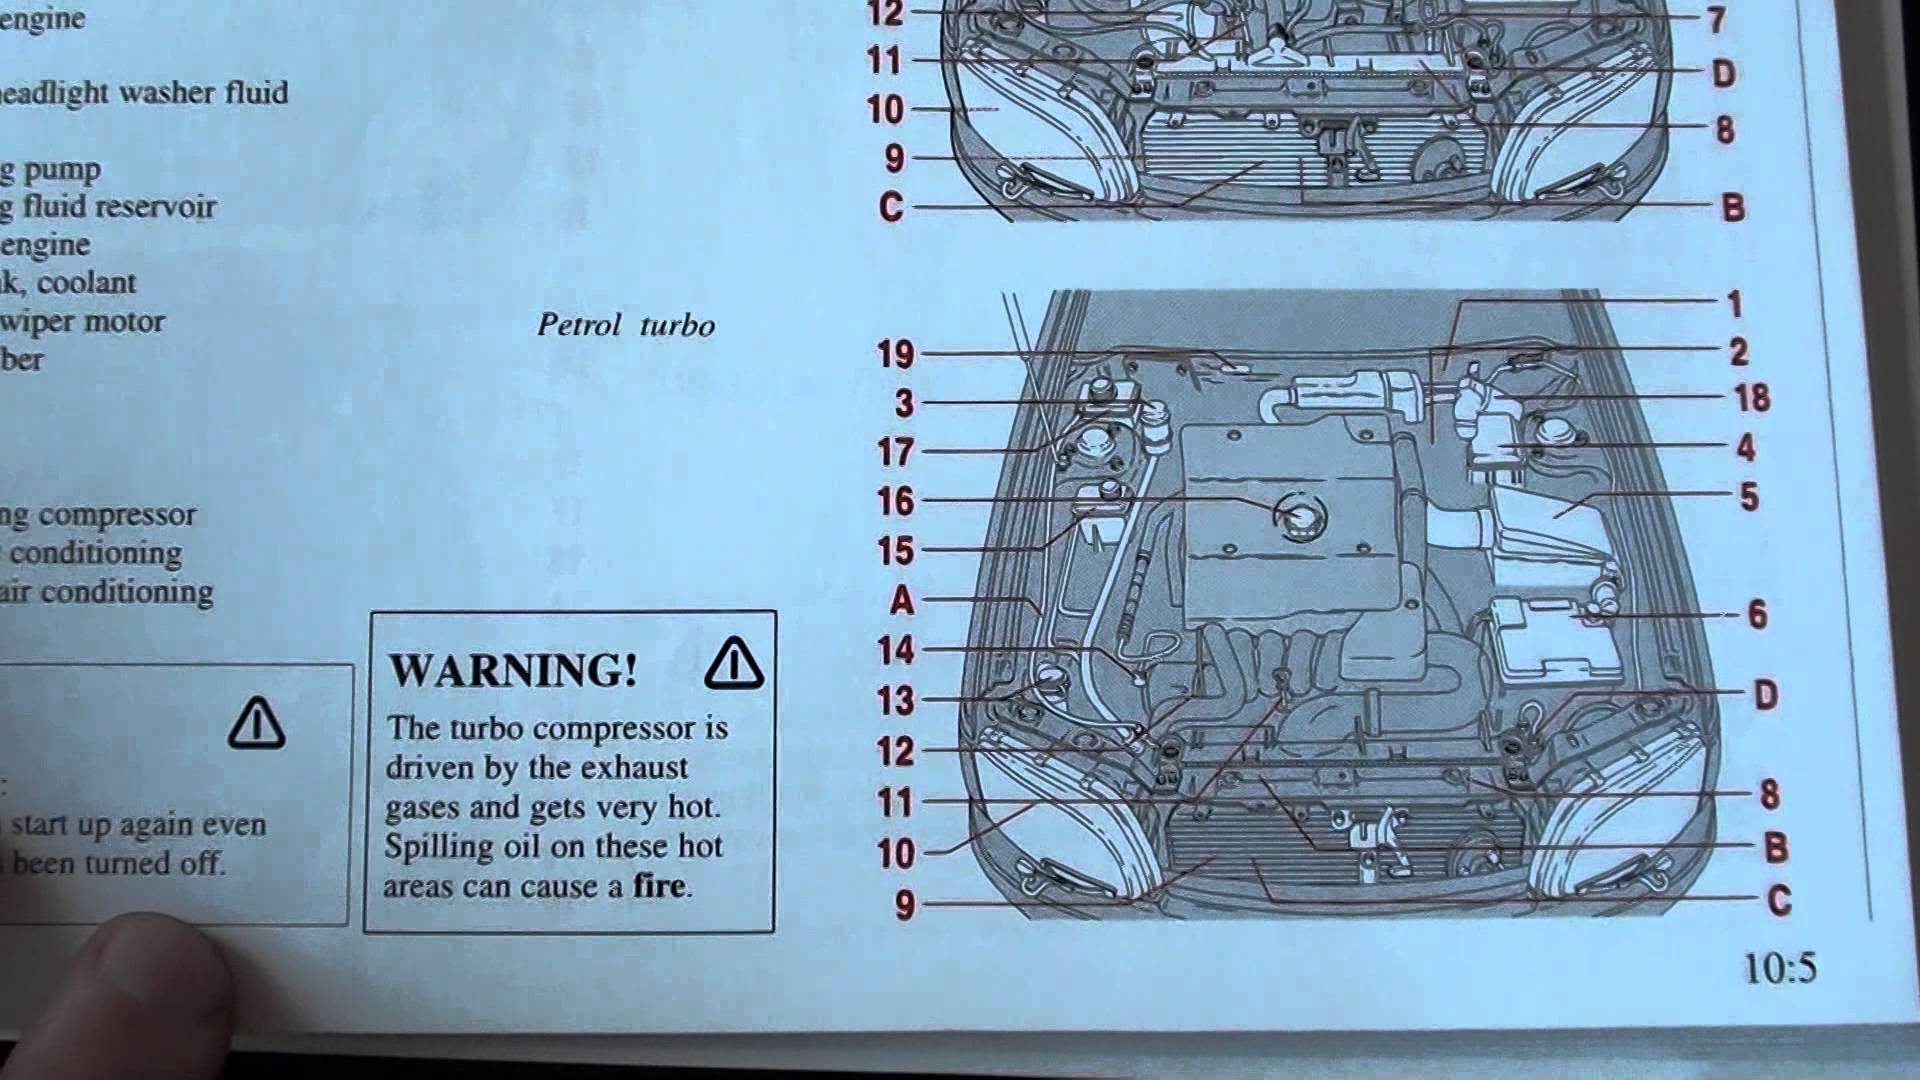 Volvo V50 Towbar Wiring Diagram | Best Wiring Library - Volvo V70 Trailer Wiring Diagram